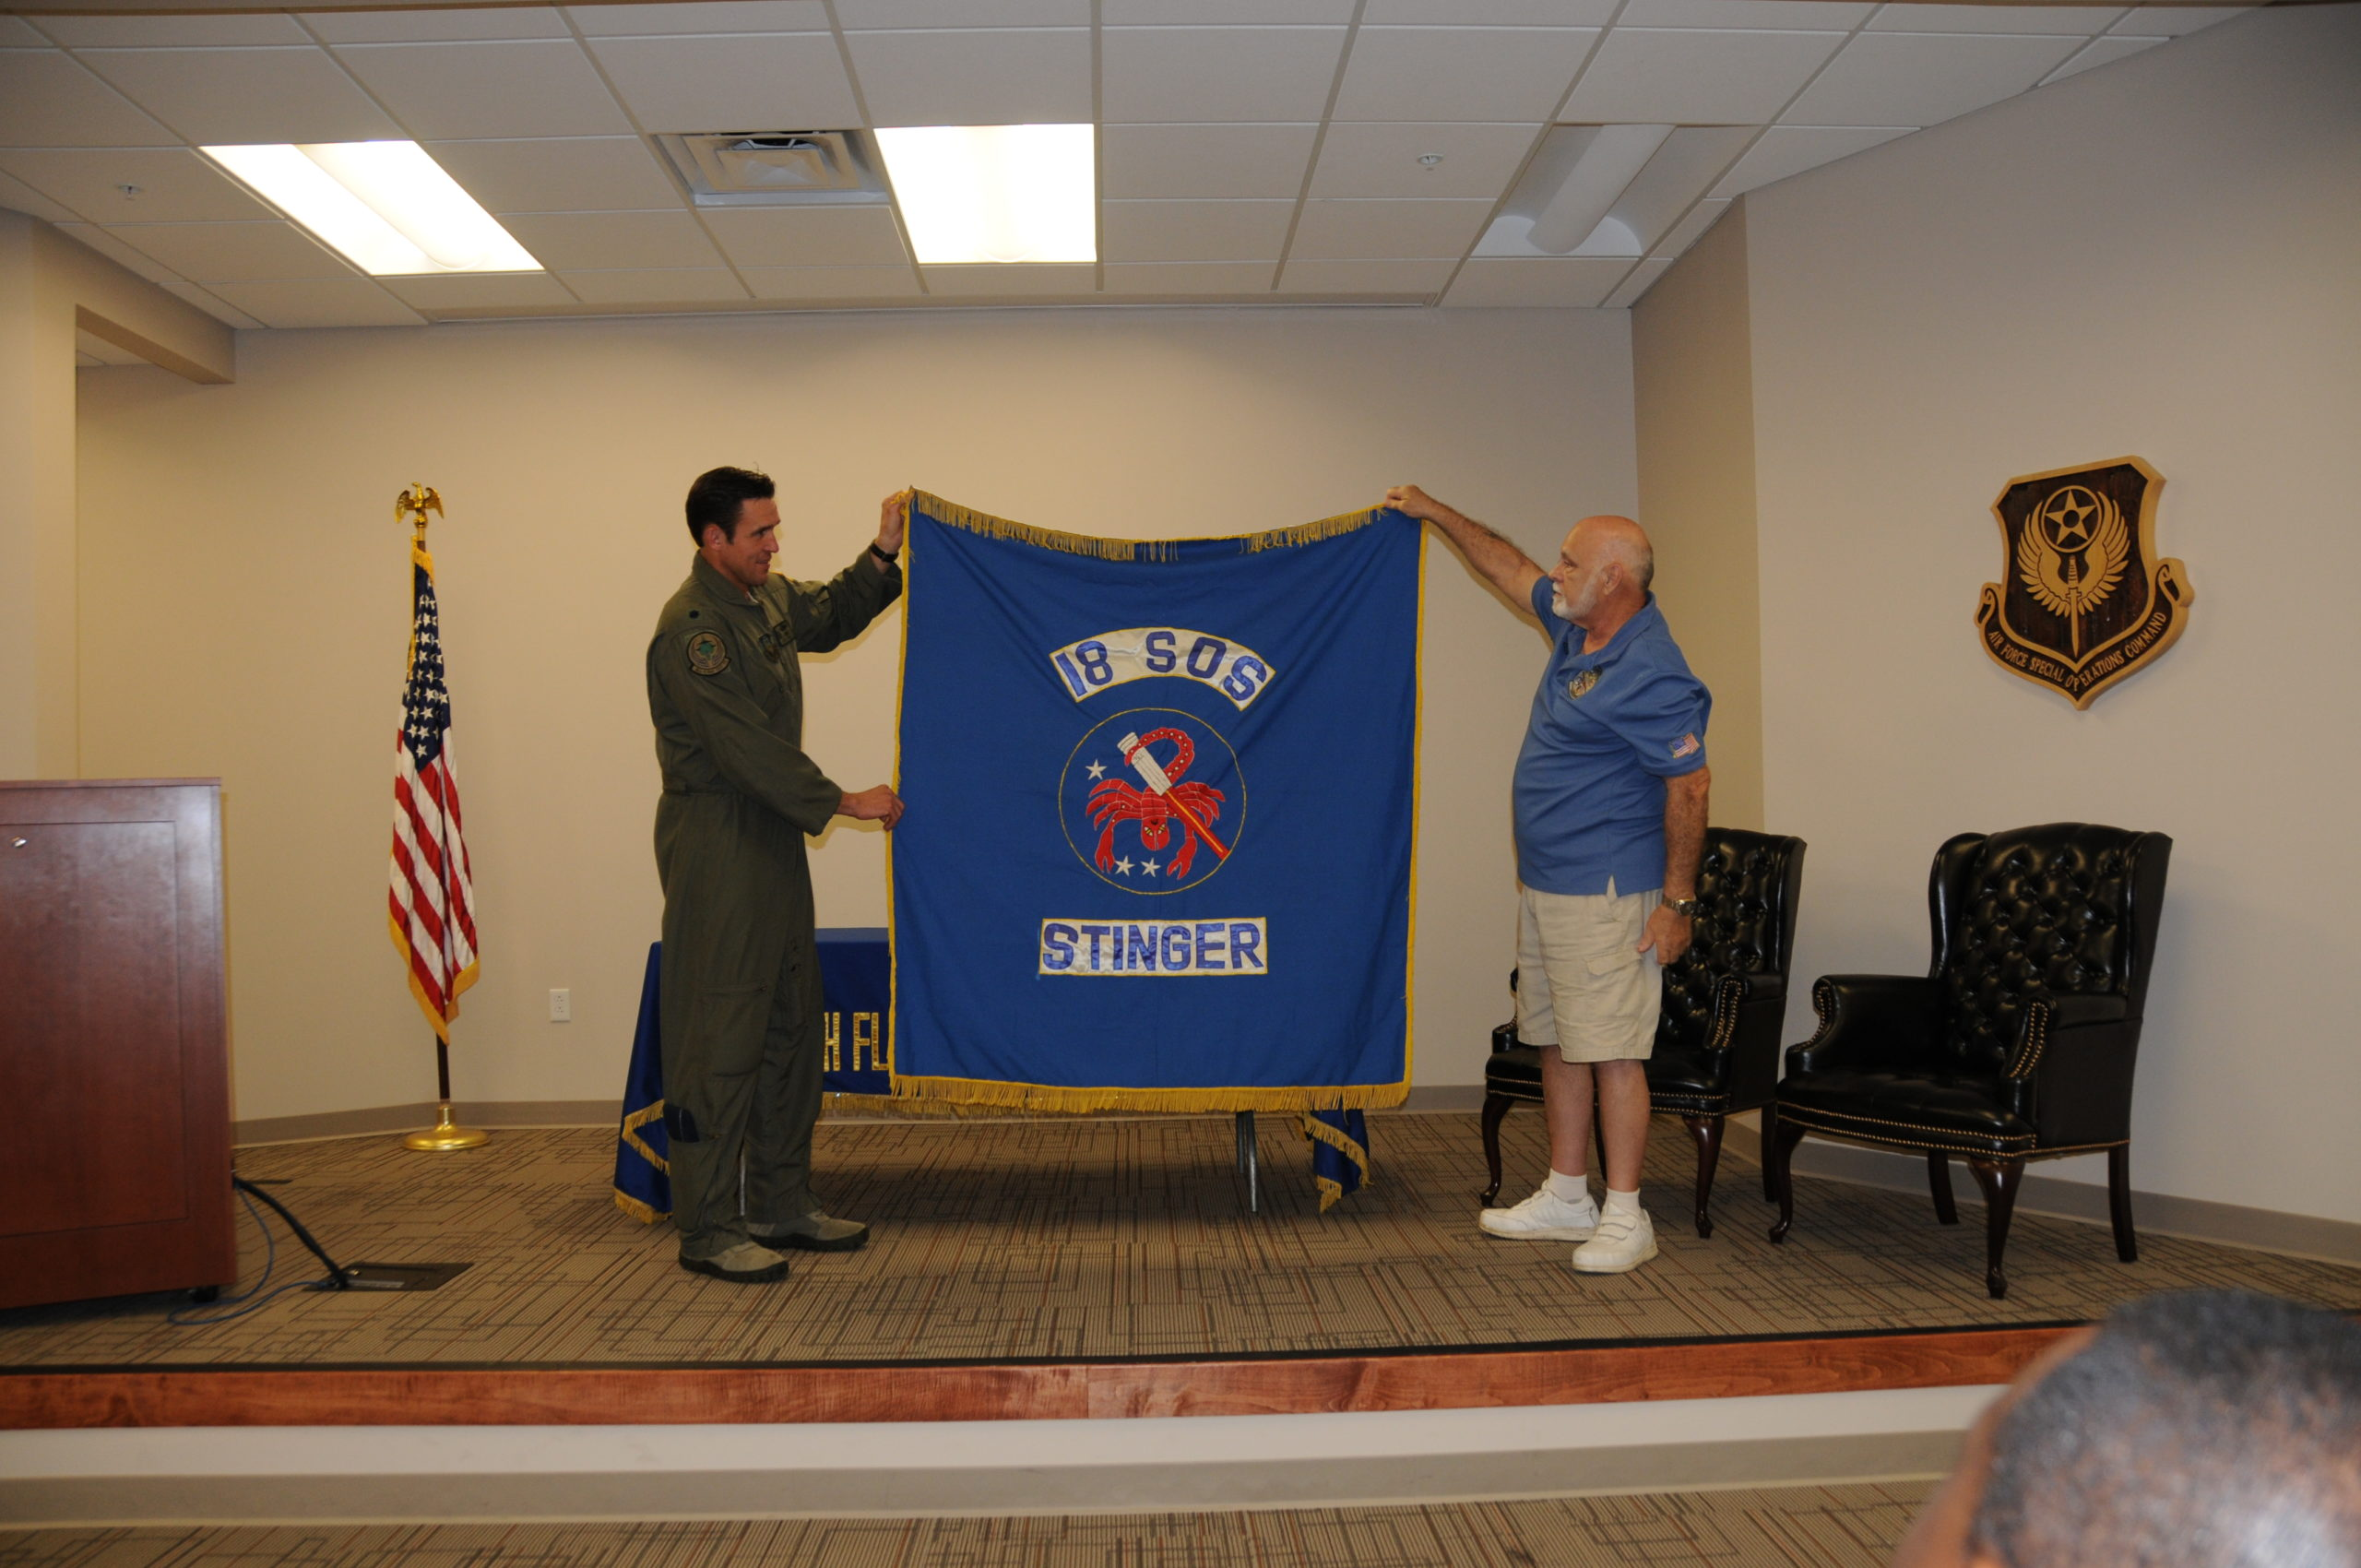 18th SOS DaNang Flag Presented to 18th FLTS(2)